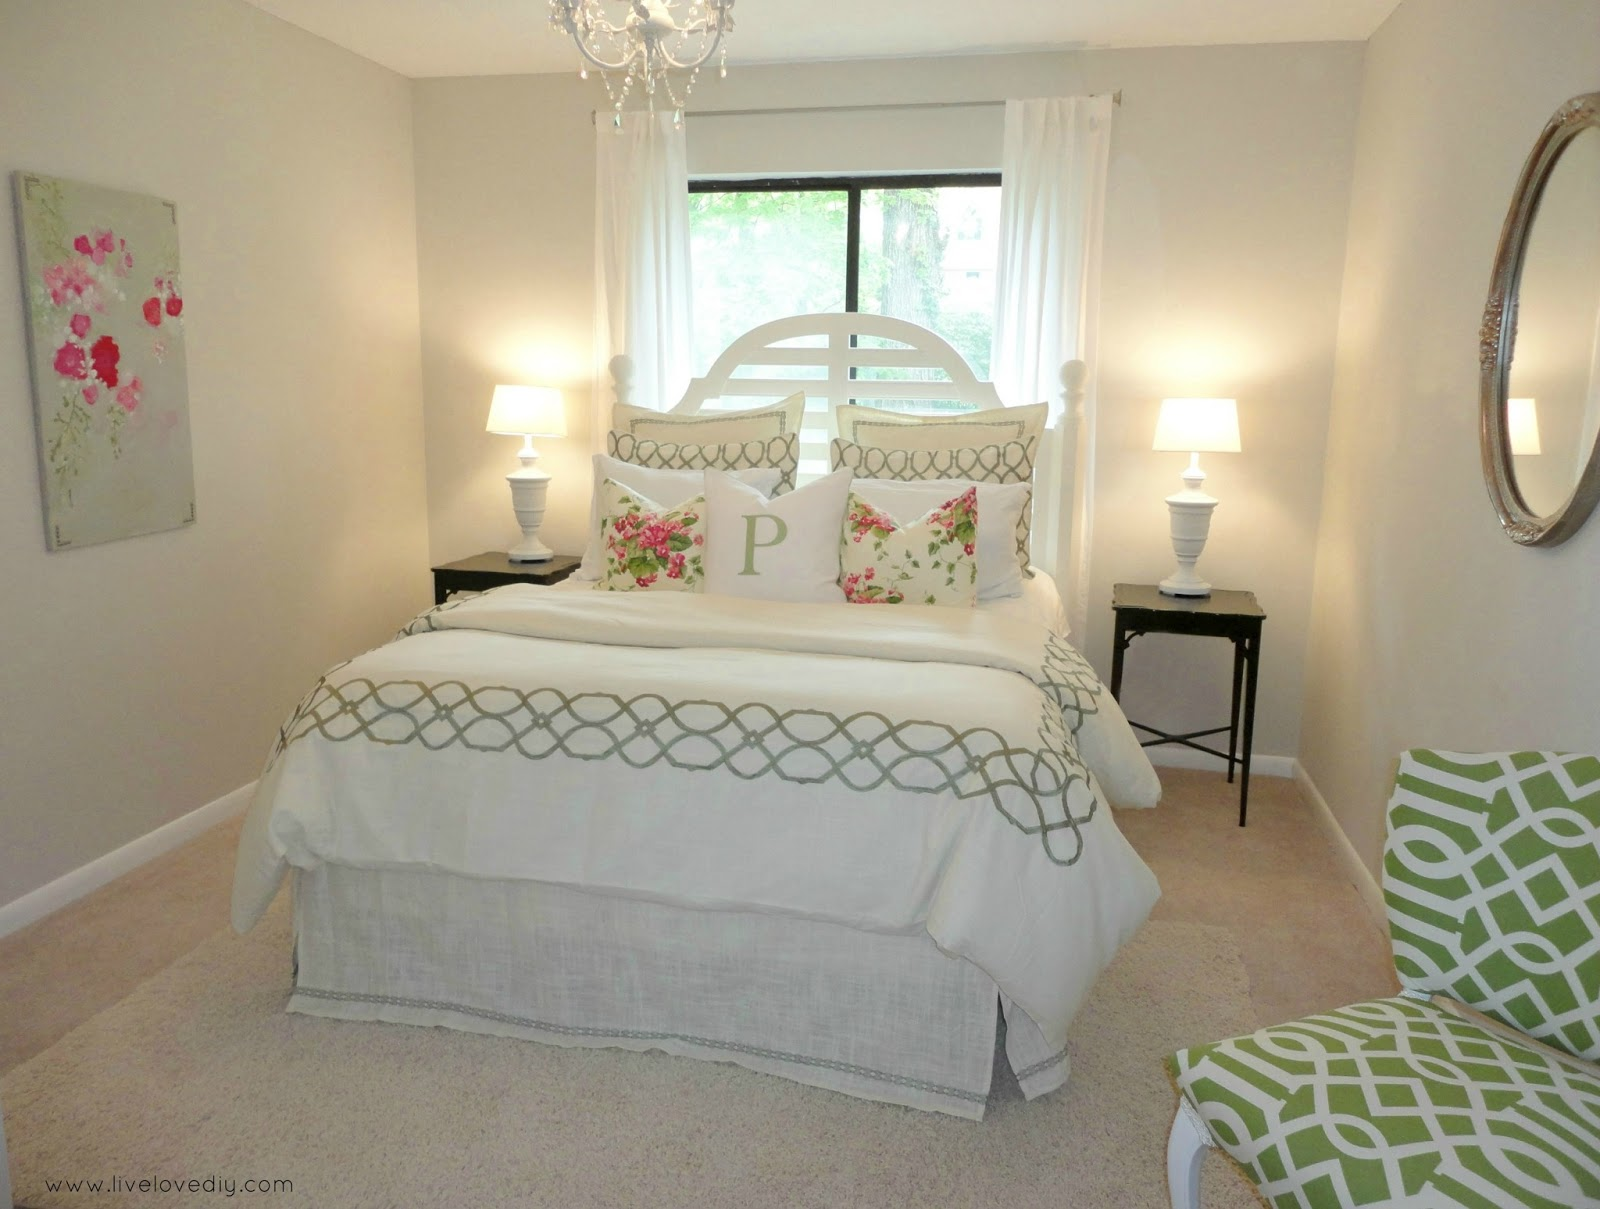 Small Guest Bedroom Ideas - Queen Size Bedding